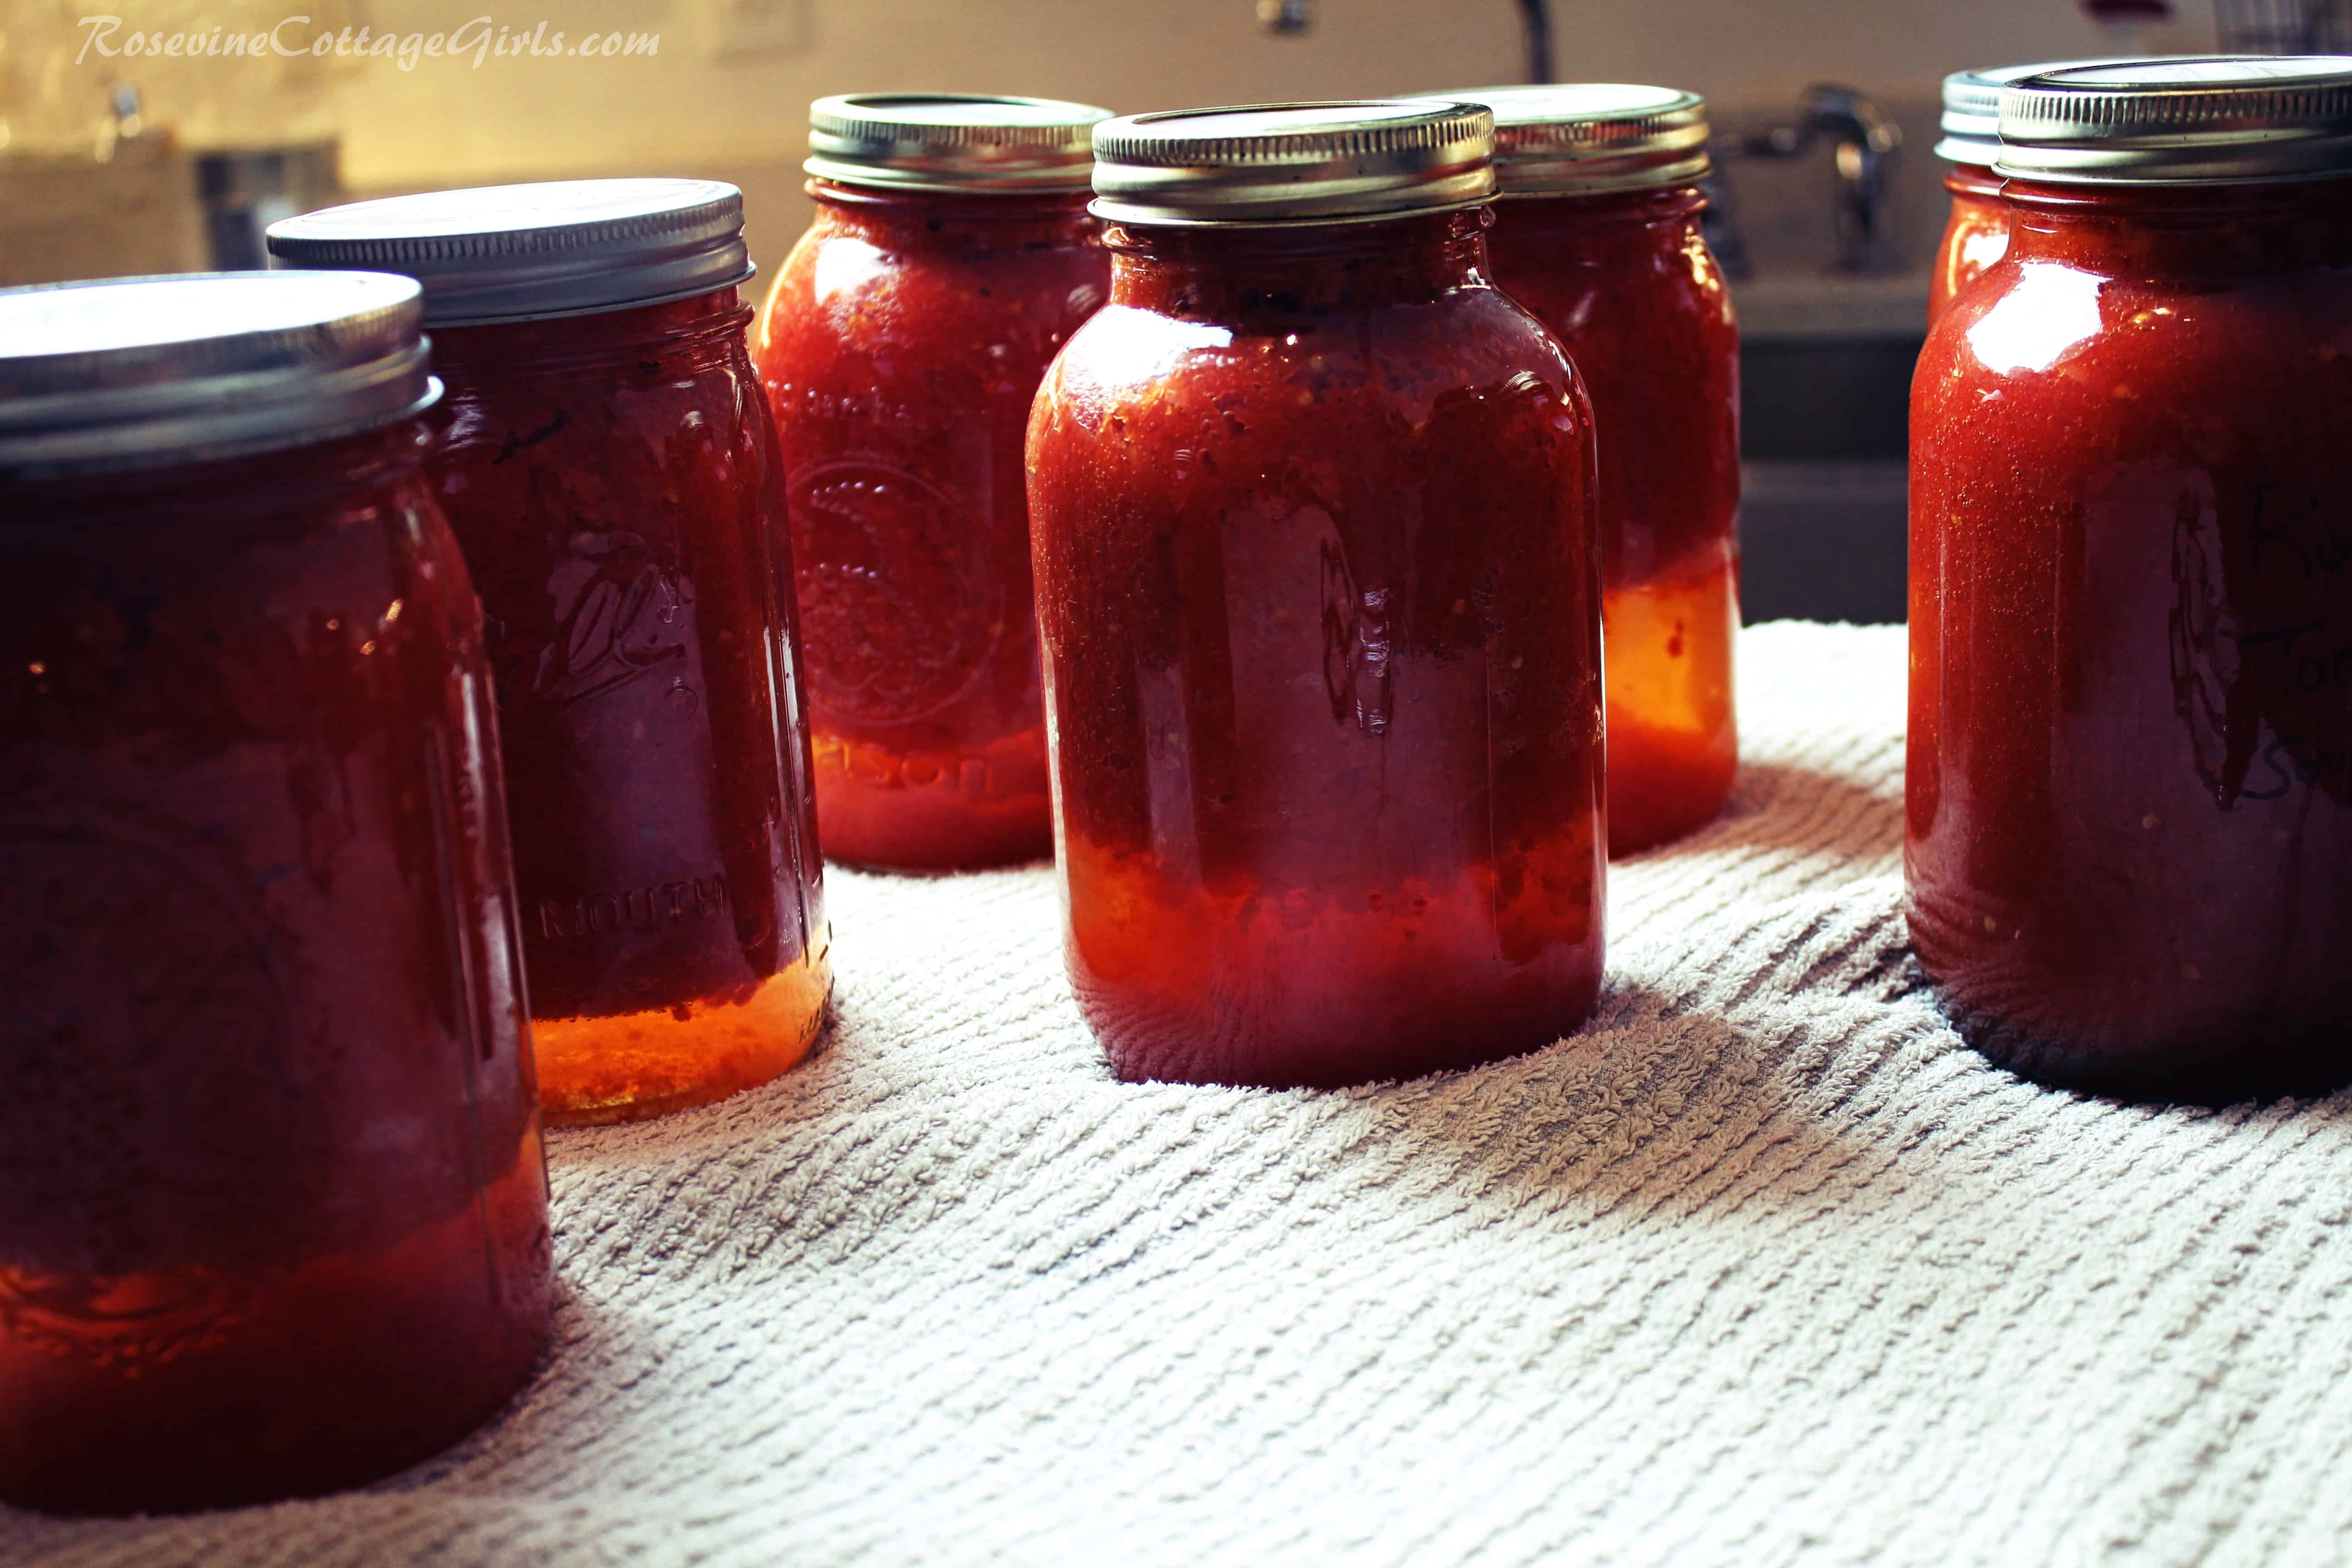 photo of jars of canned tomato sauce on a white towel | rosevinecottagegirls.com | roasted tomato sauce for canning